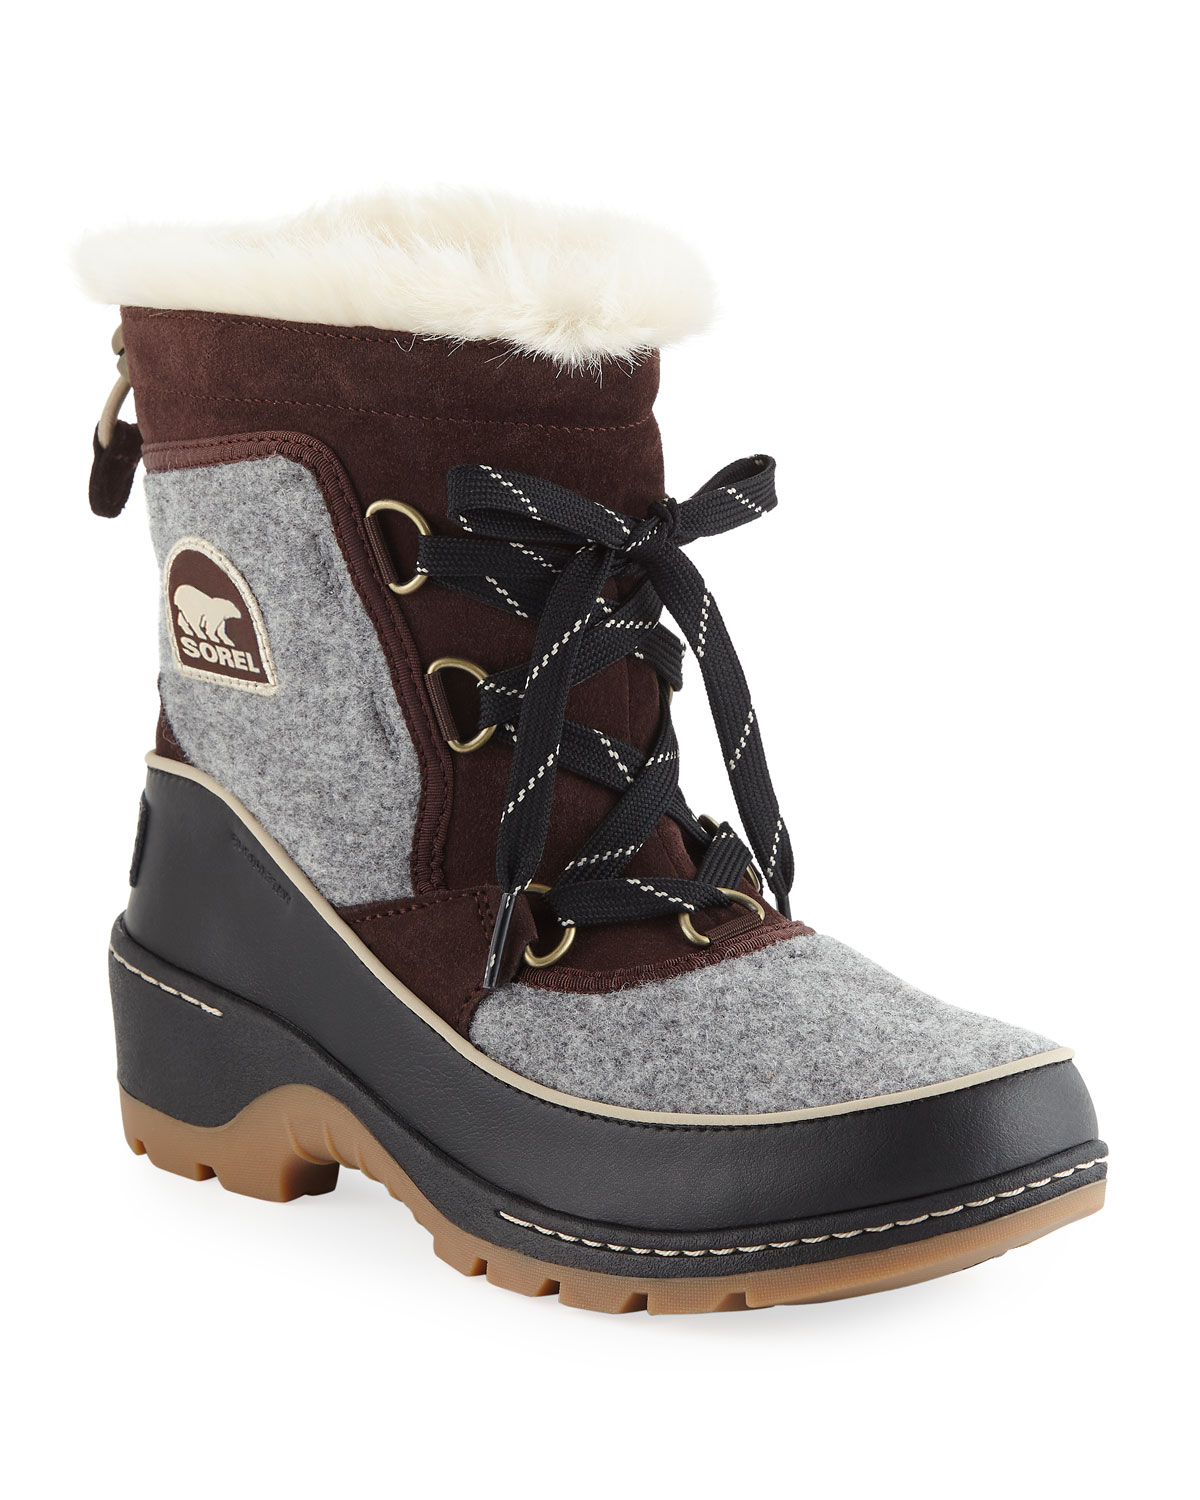 Tivoli Iii Waterproof Lace-Up Winter Boots With Faux Fur, Gray/Brown